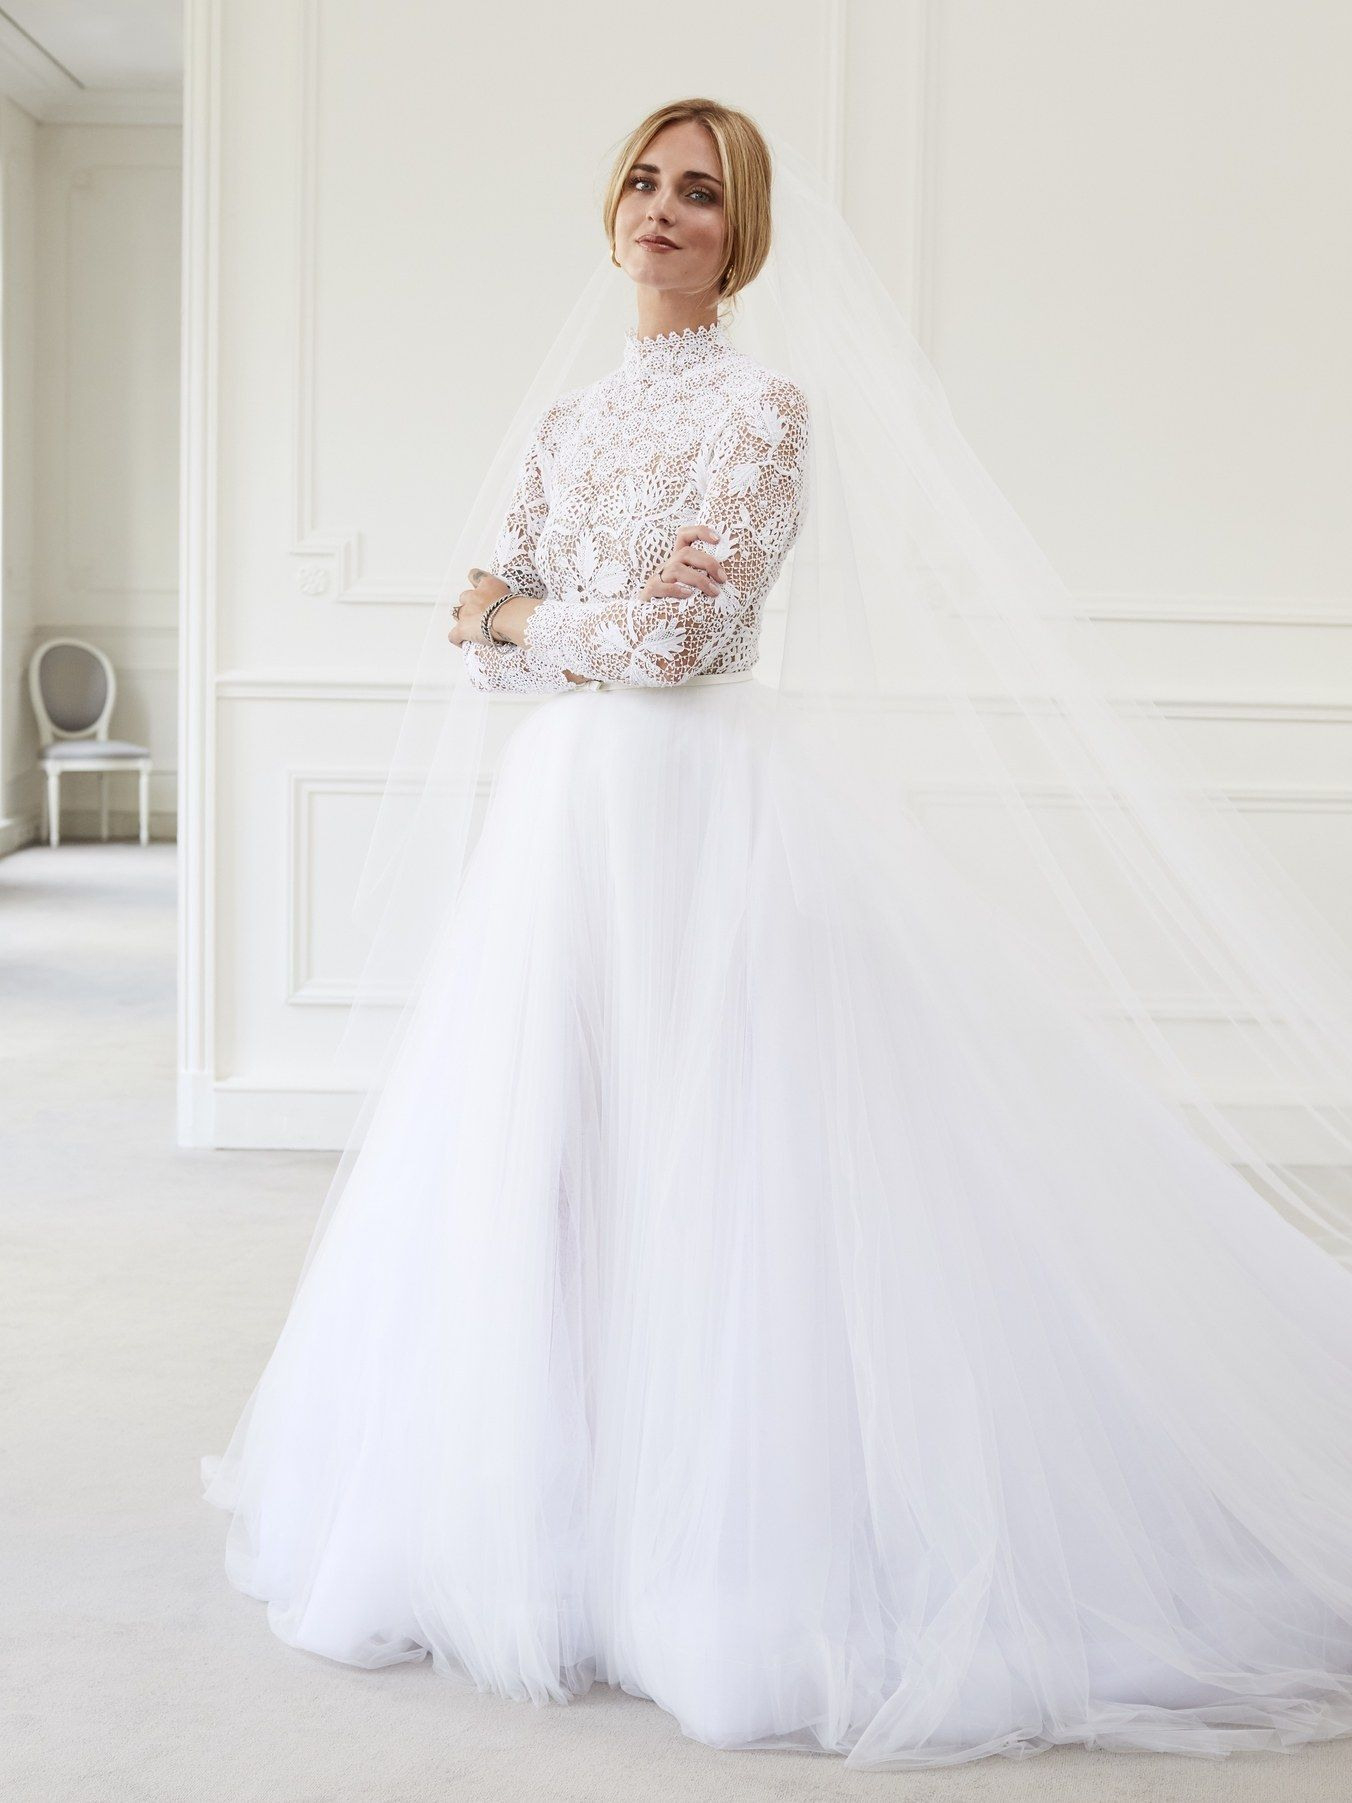 Chiara Ferragni's Wedding Dresses Explained,the Blonde